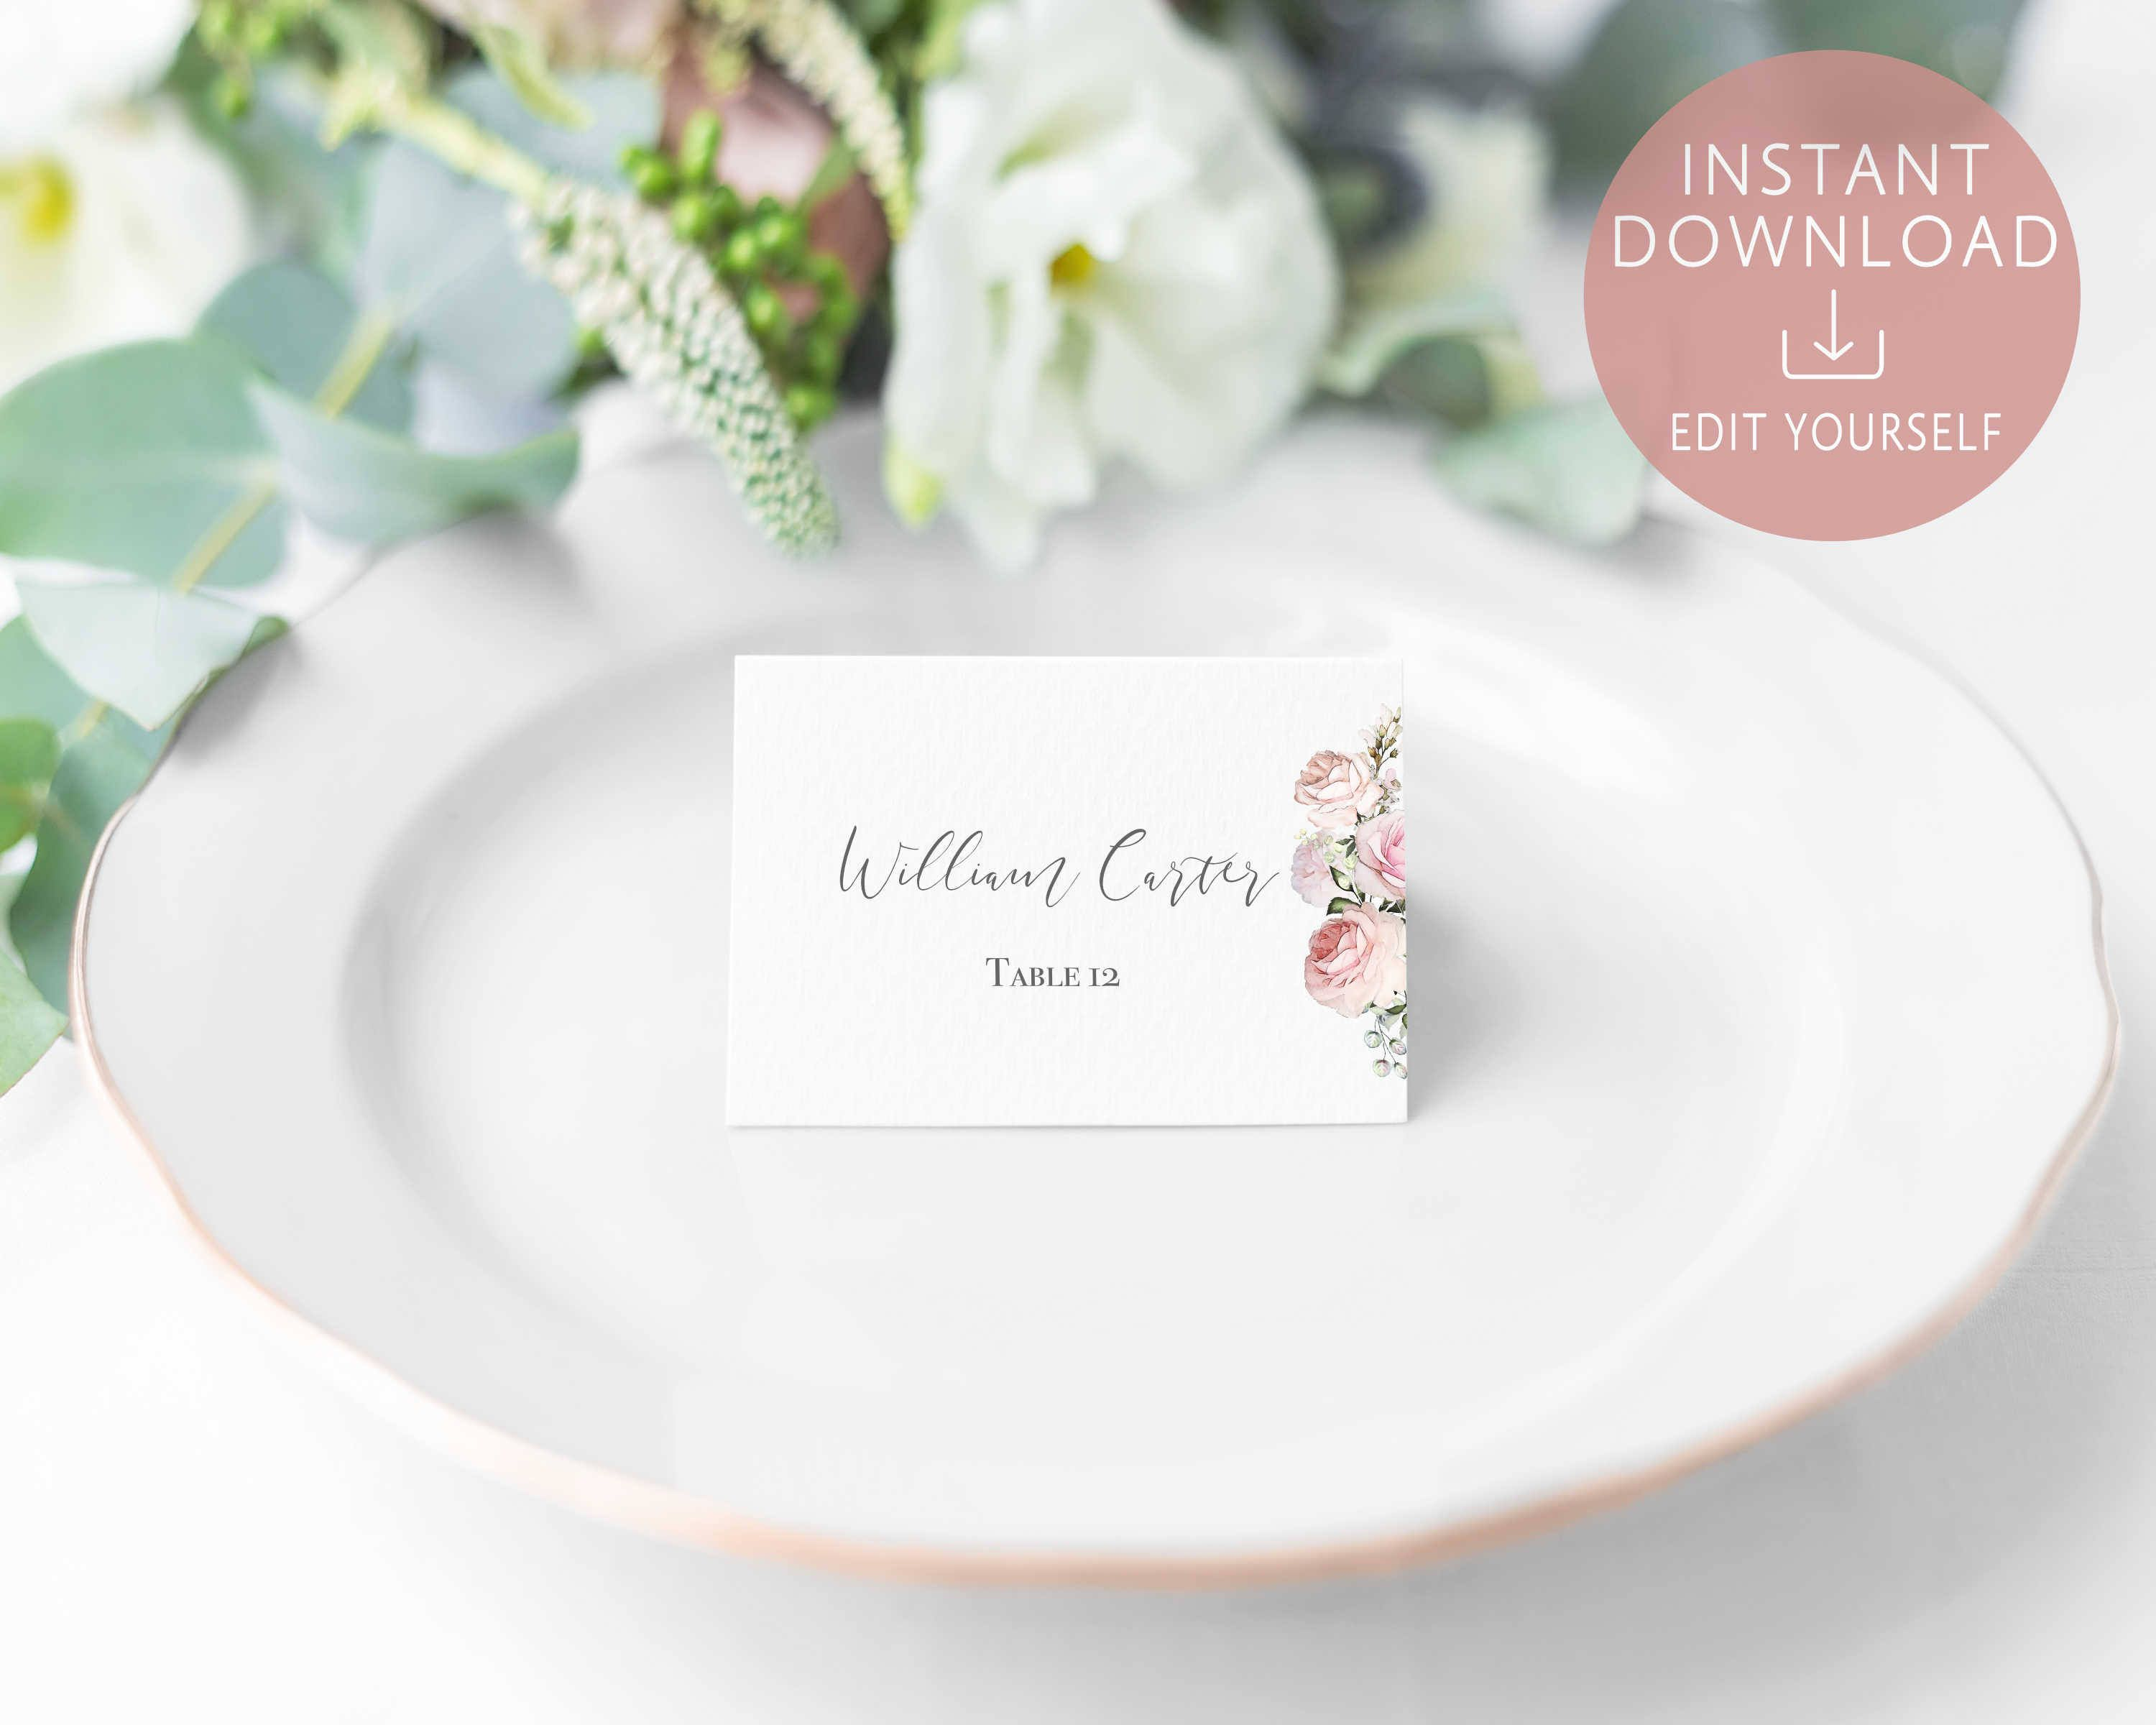 Wedding Place Cards Printable Editable Name Card Template Etsy Free Place Card Template Place Card Template Wedding Place Cards